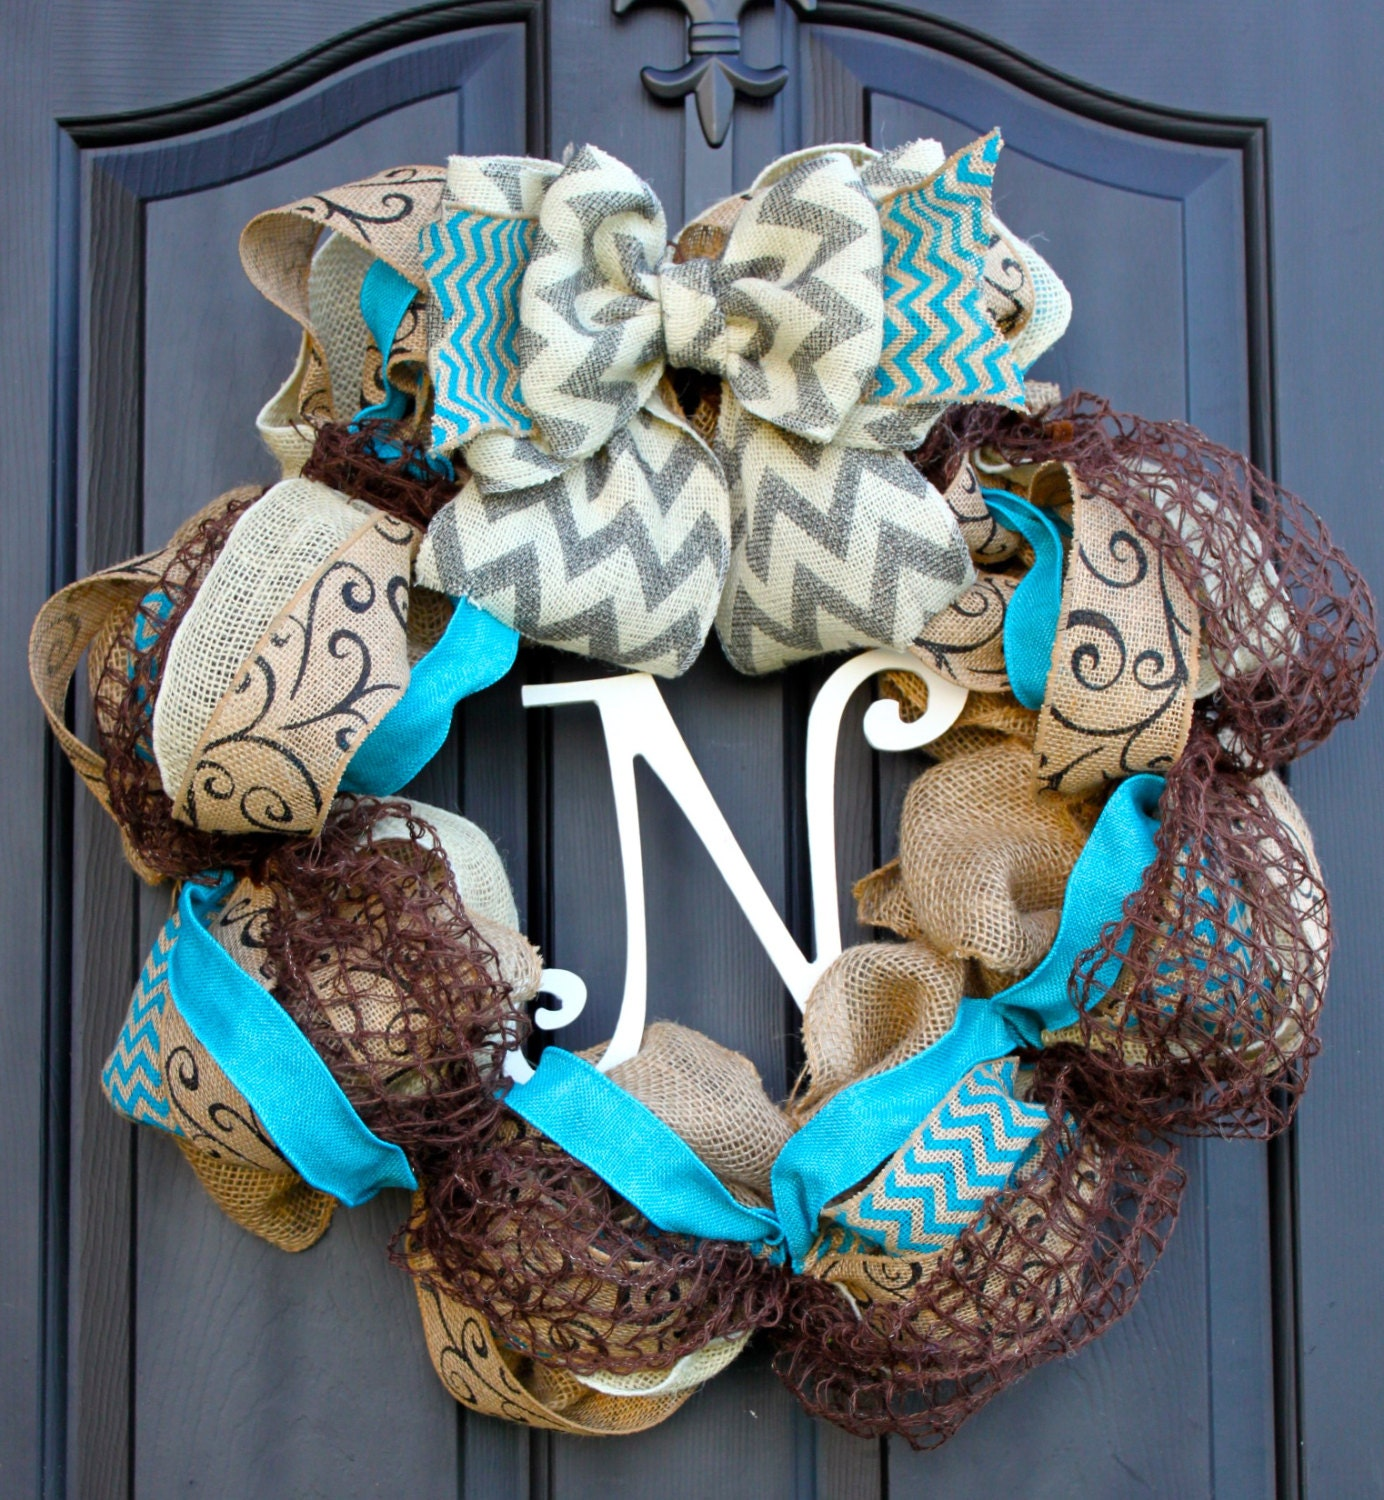 Spring burlap wreath ideas images search results for Burlap designs